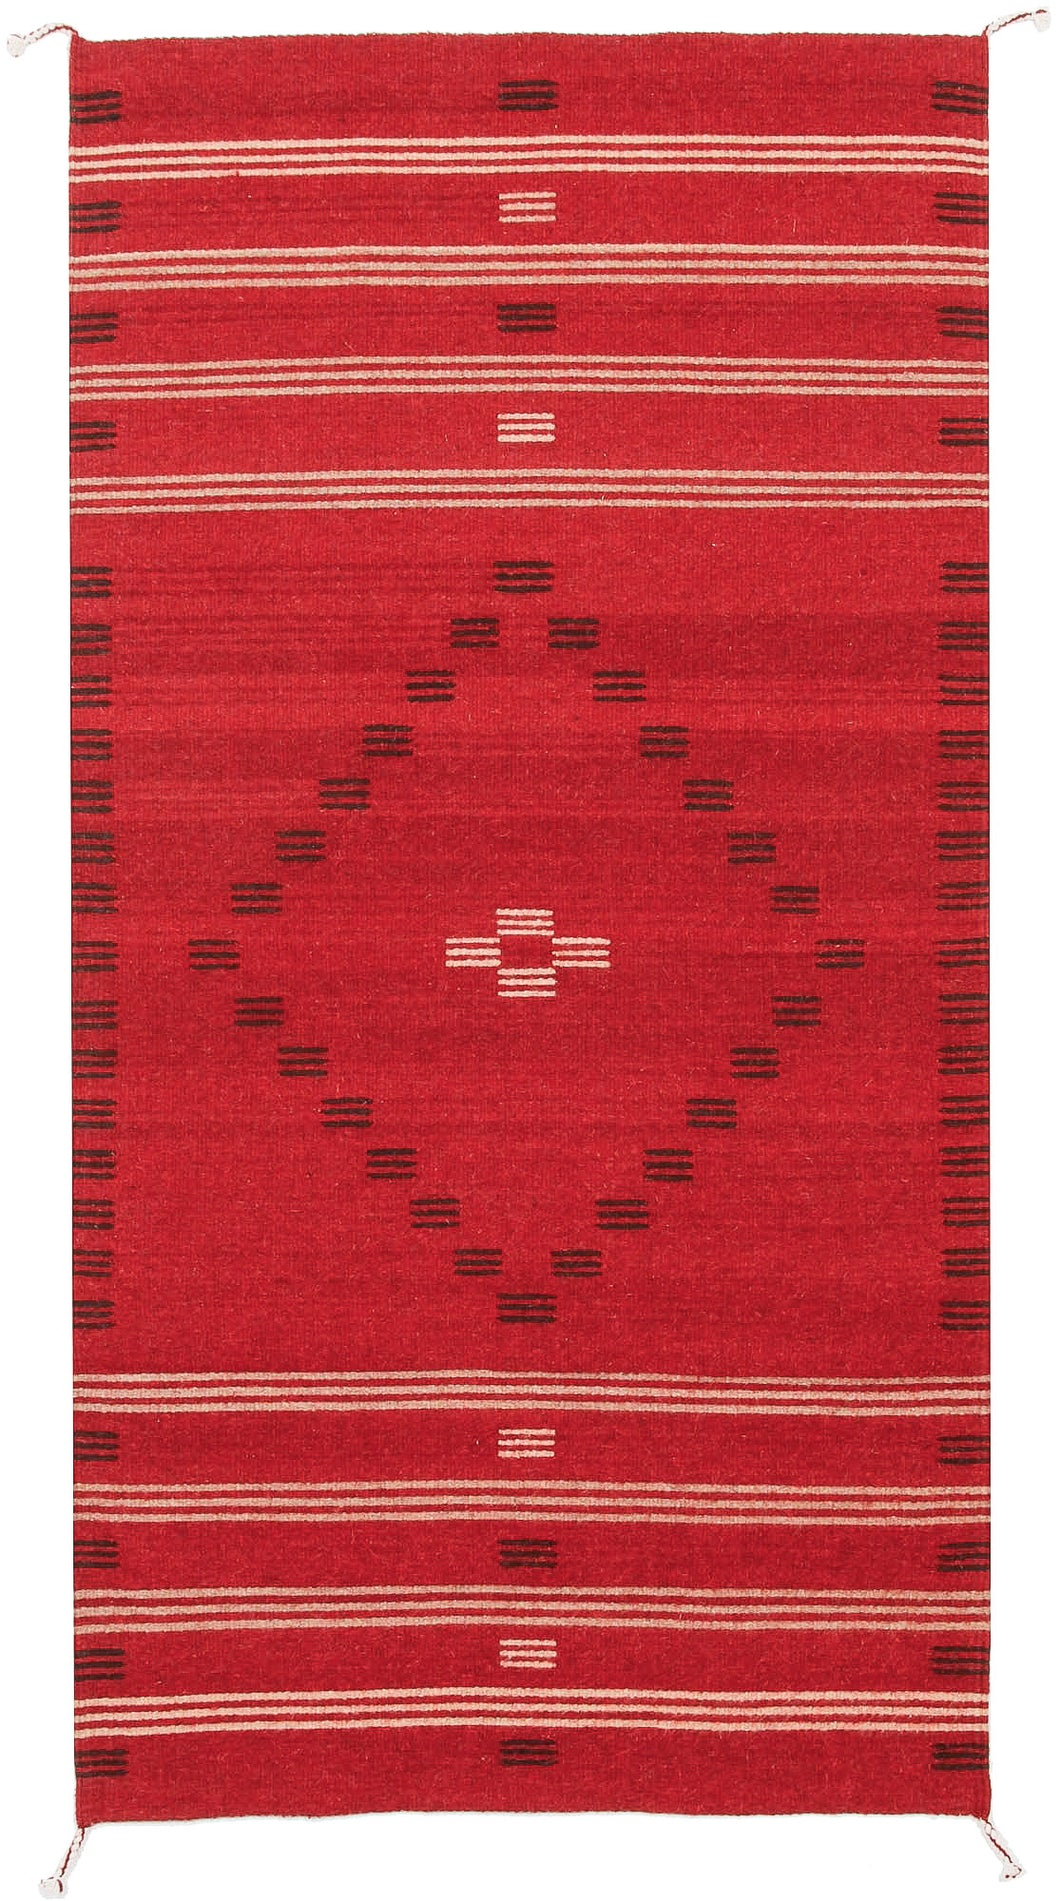 Handwoven Zapotec Indian Rug - First Mesa Wool Oaxacan Textile